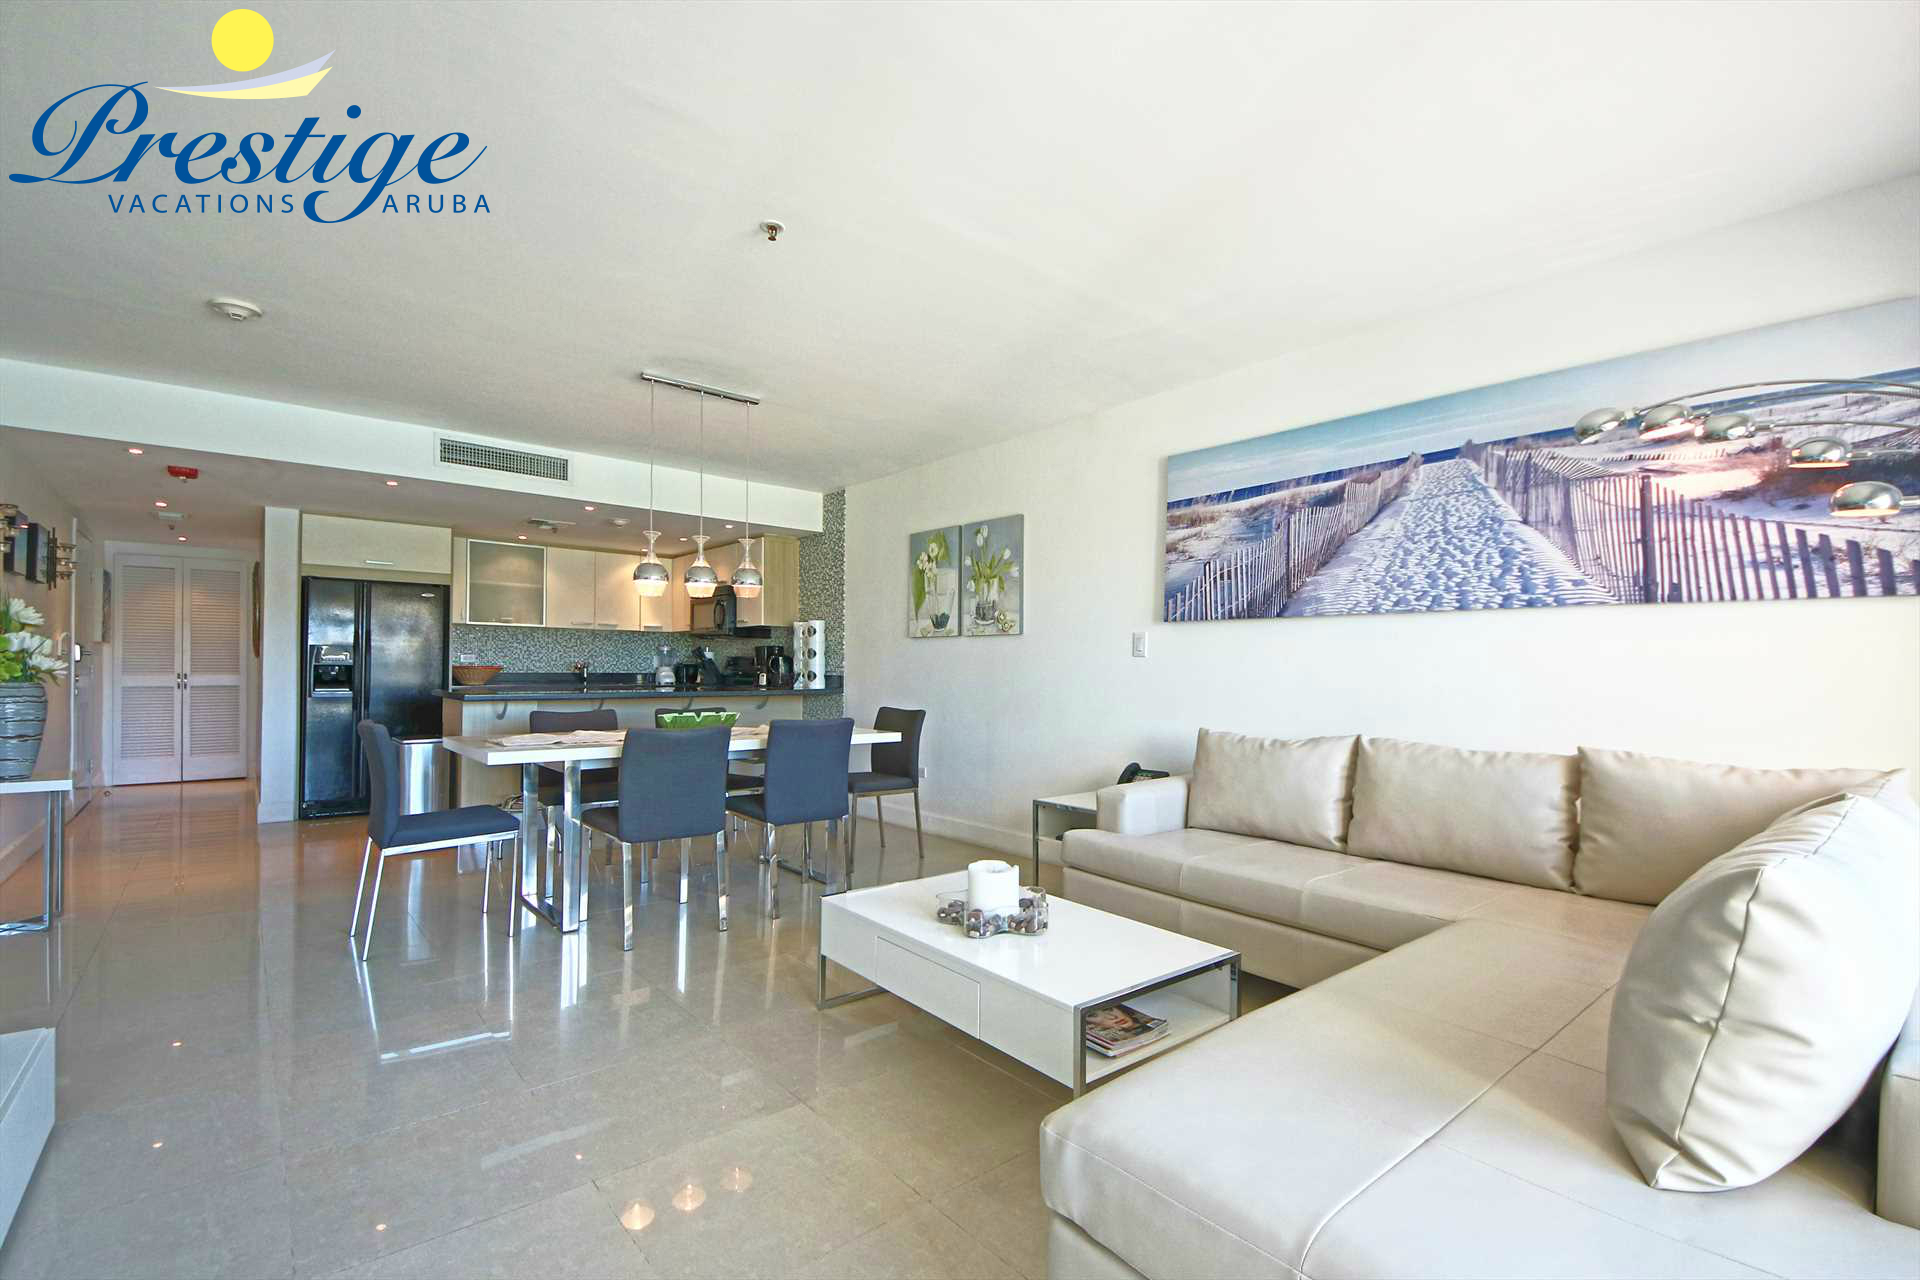 Full view of your elegantly furnished vacation condo